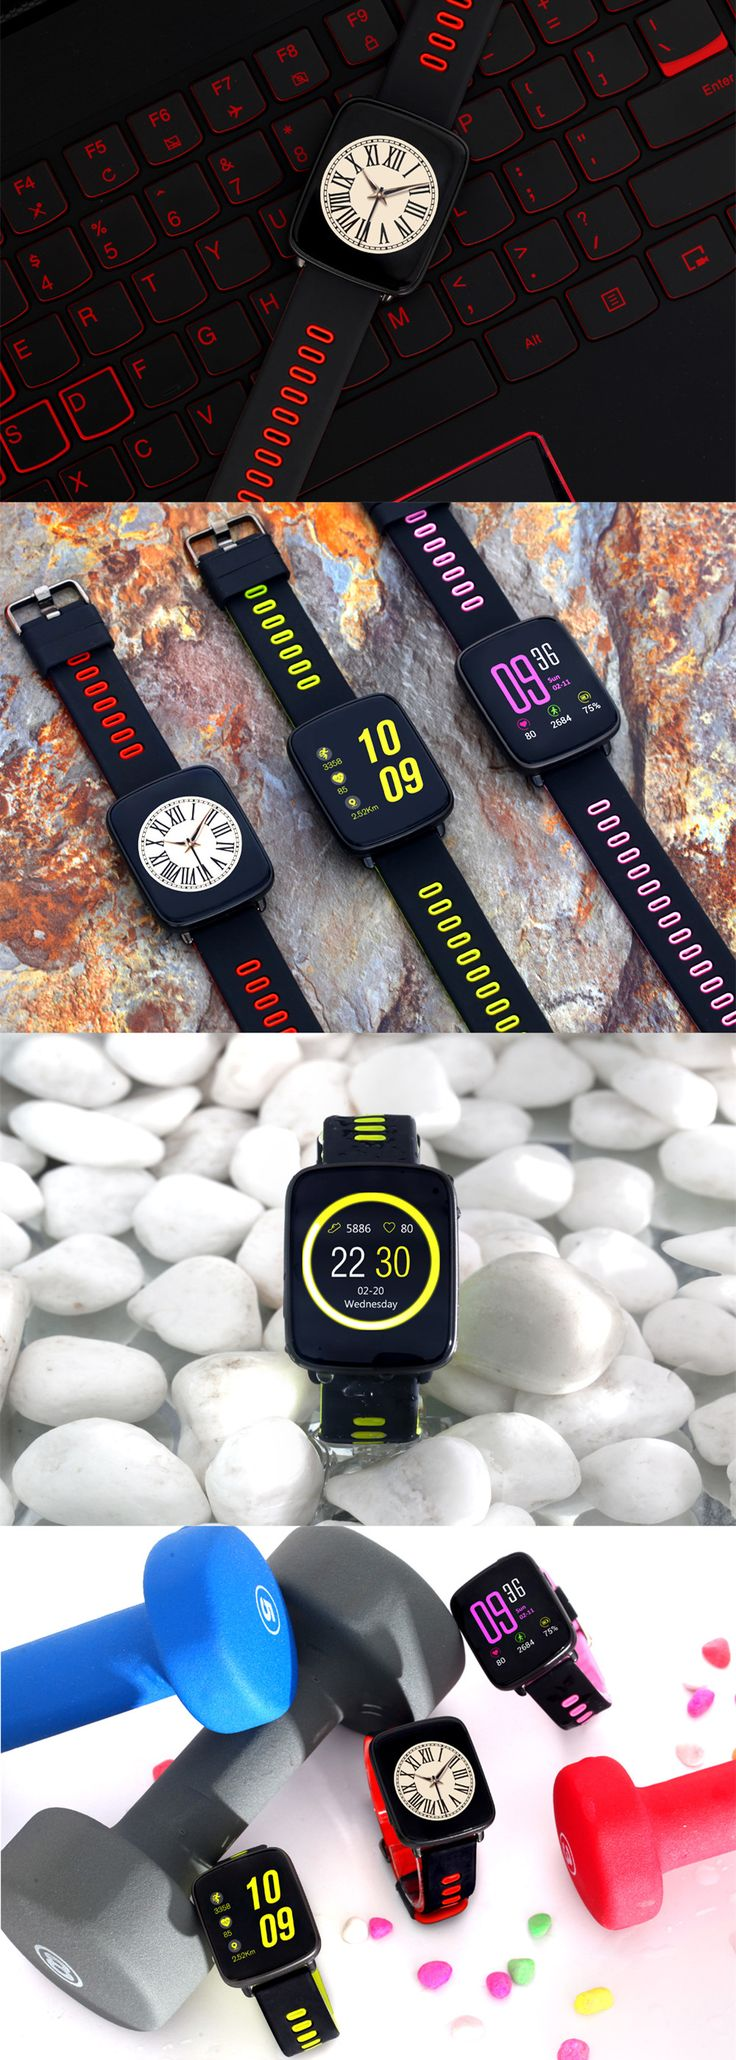 KINGWEAR GV68 MT2502D IP68 Waterproof Swim Call Heart Rate Monitor Smart Watch for IOS Android